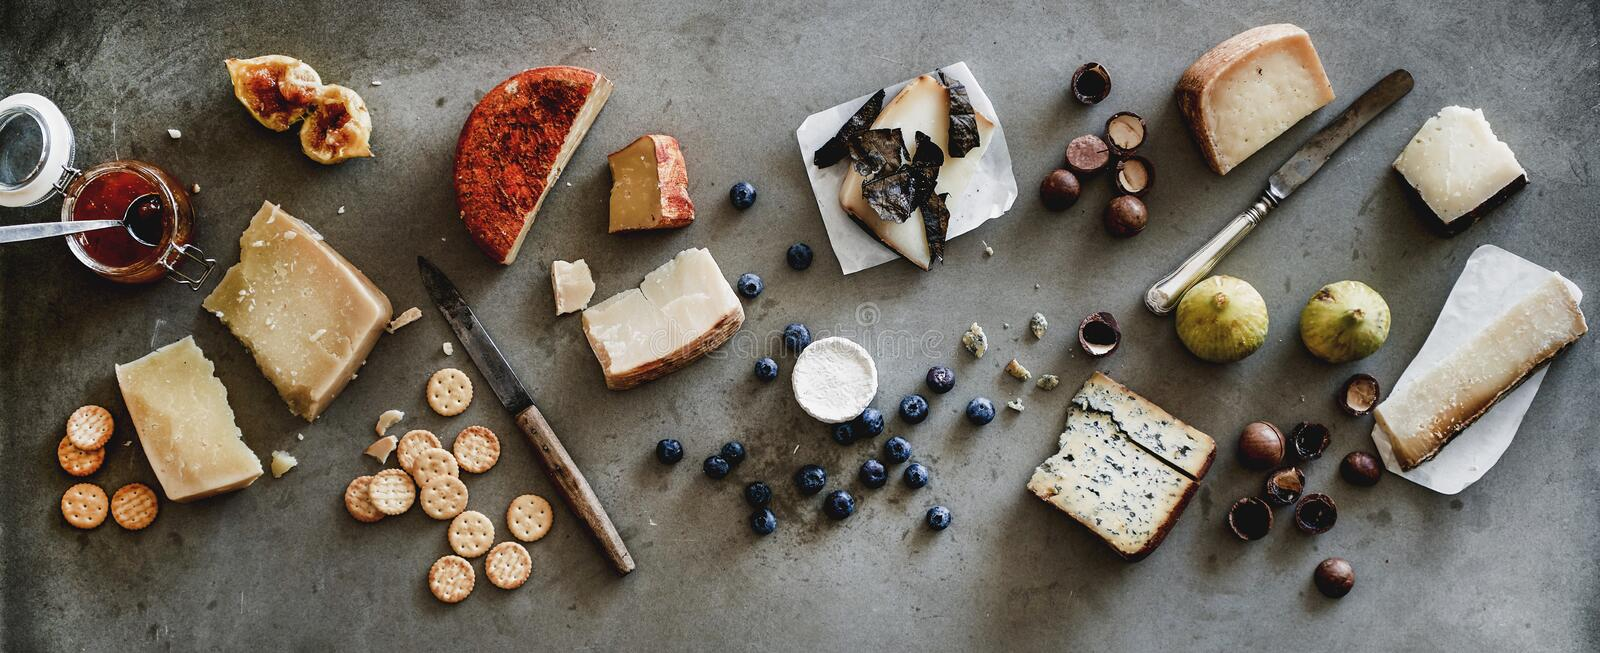 Variety of wine snacks, jam and cheeses over grey background. Wine snack variety. Flat-lay of cheeses, jam, fresh fruit, nuts and crackers over rough grey stock image